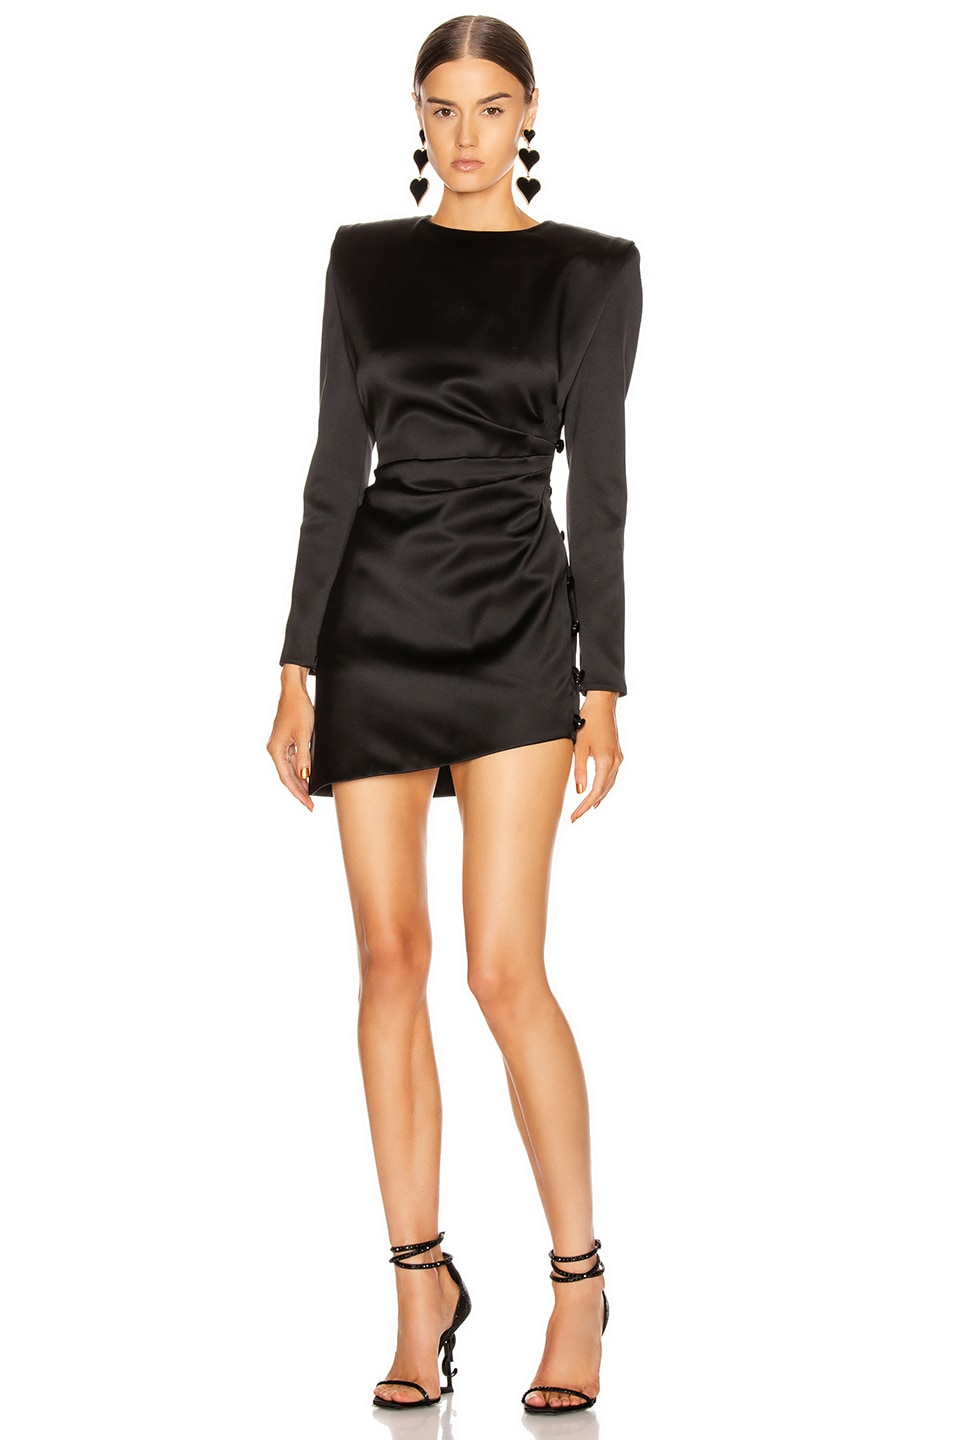 Saint Laurent Dresses Long Sleeve Mini Dress